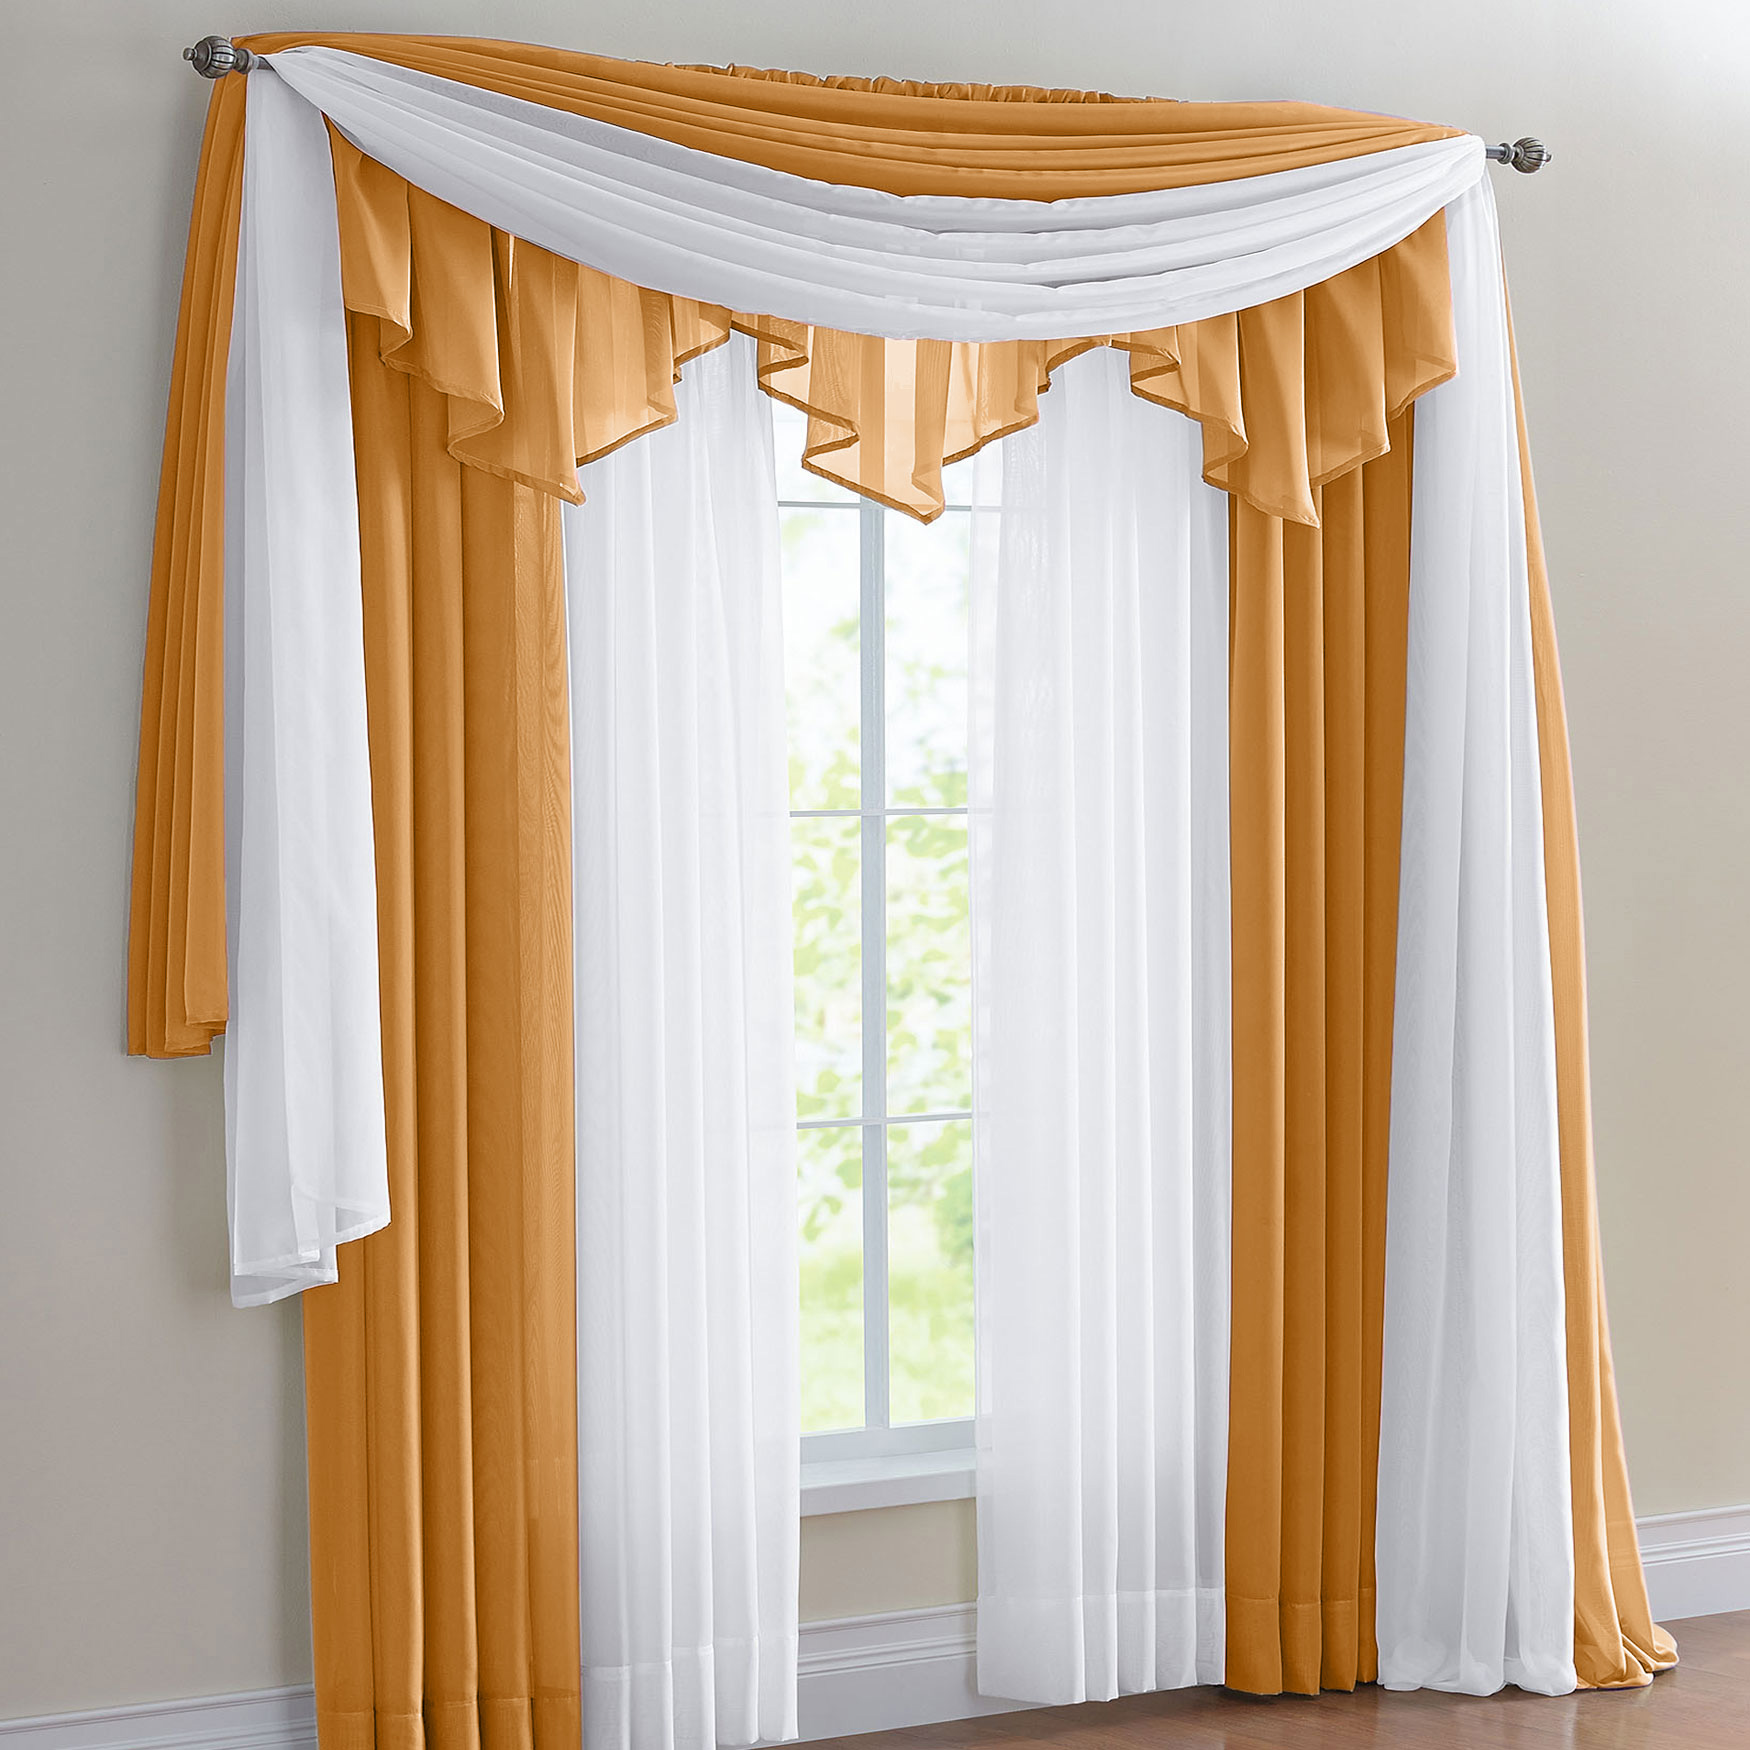 BH Studio Sheer Voile Ascot Valance,